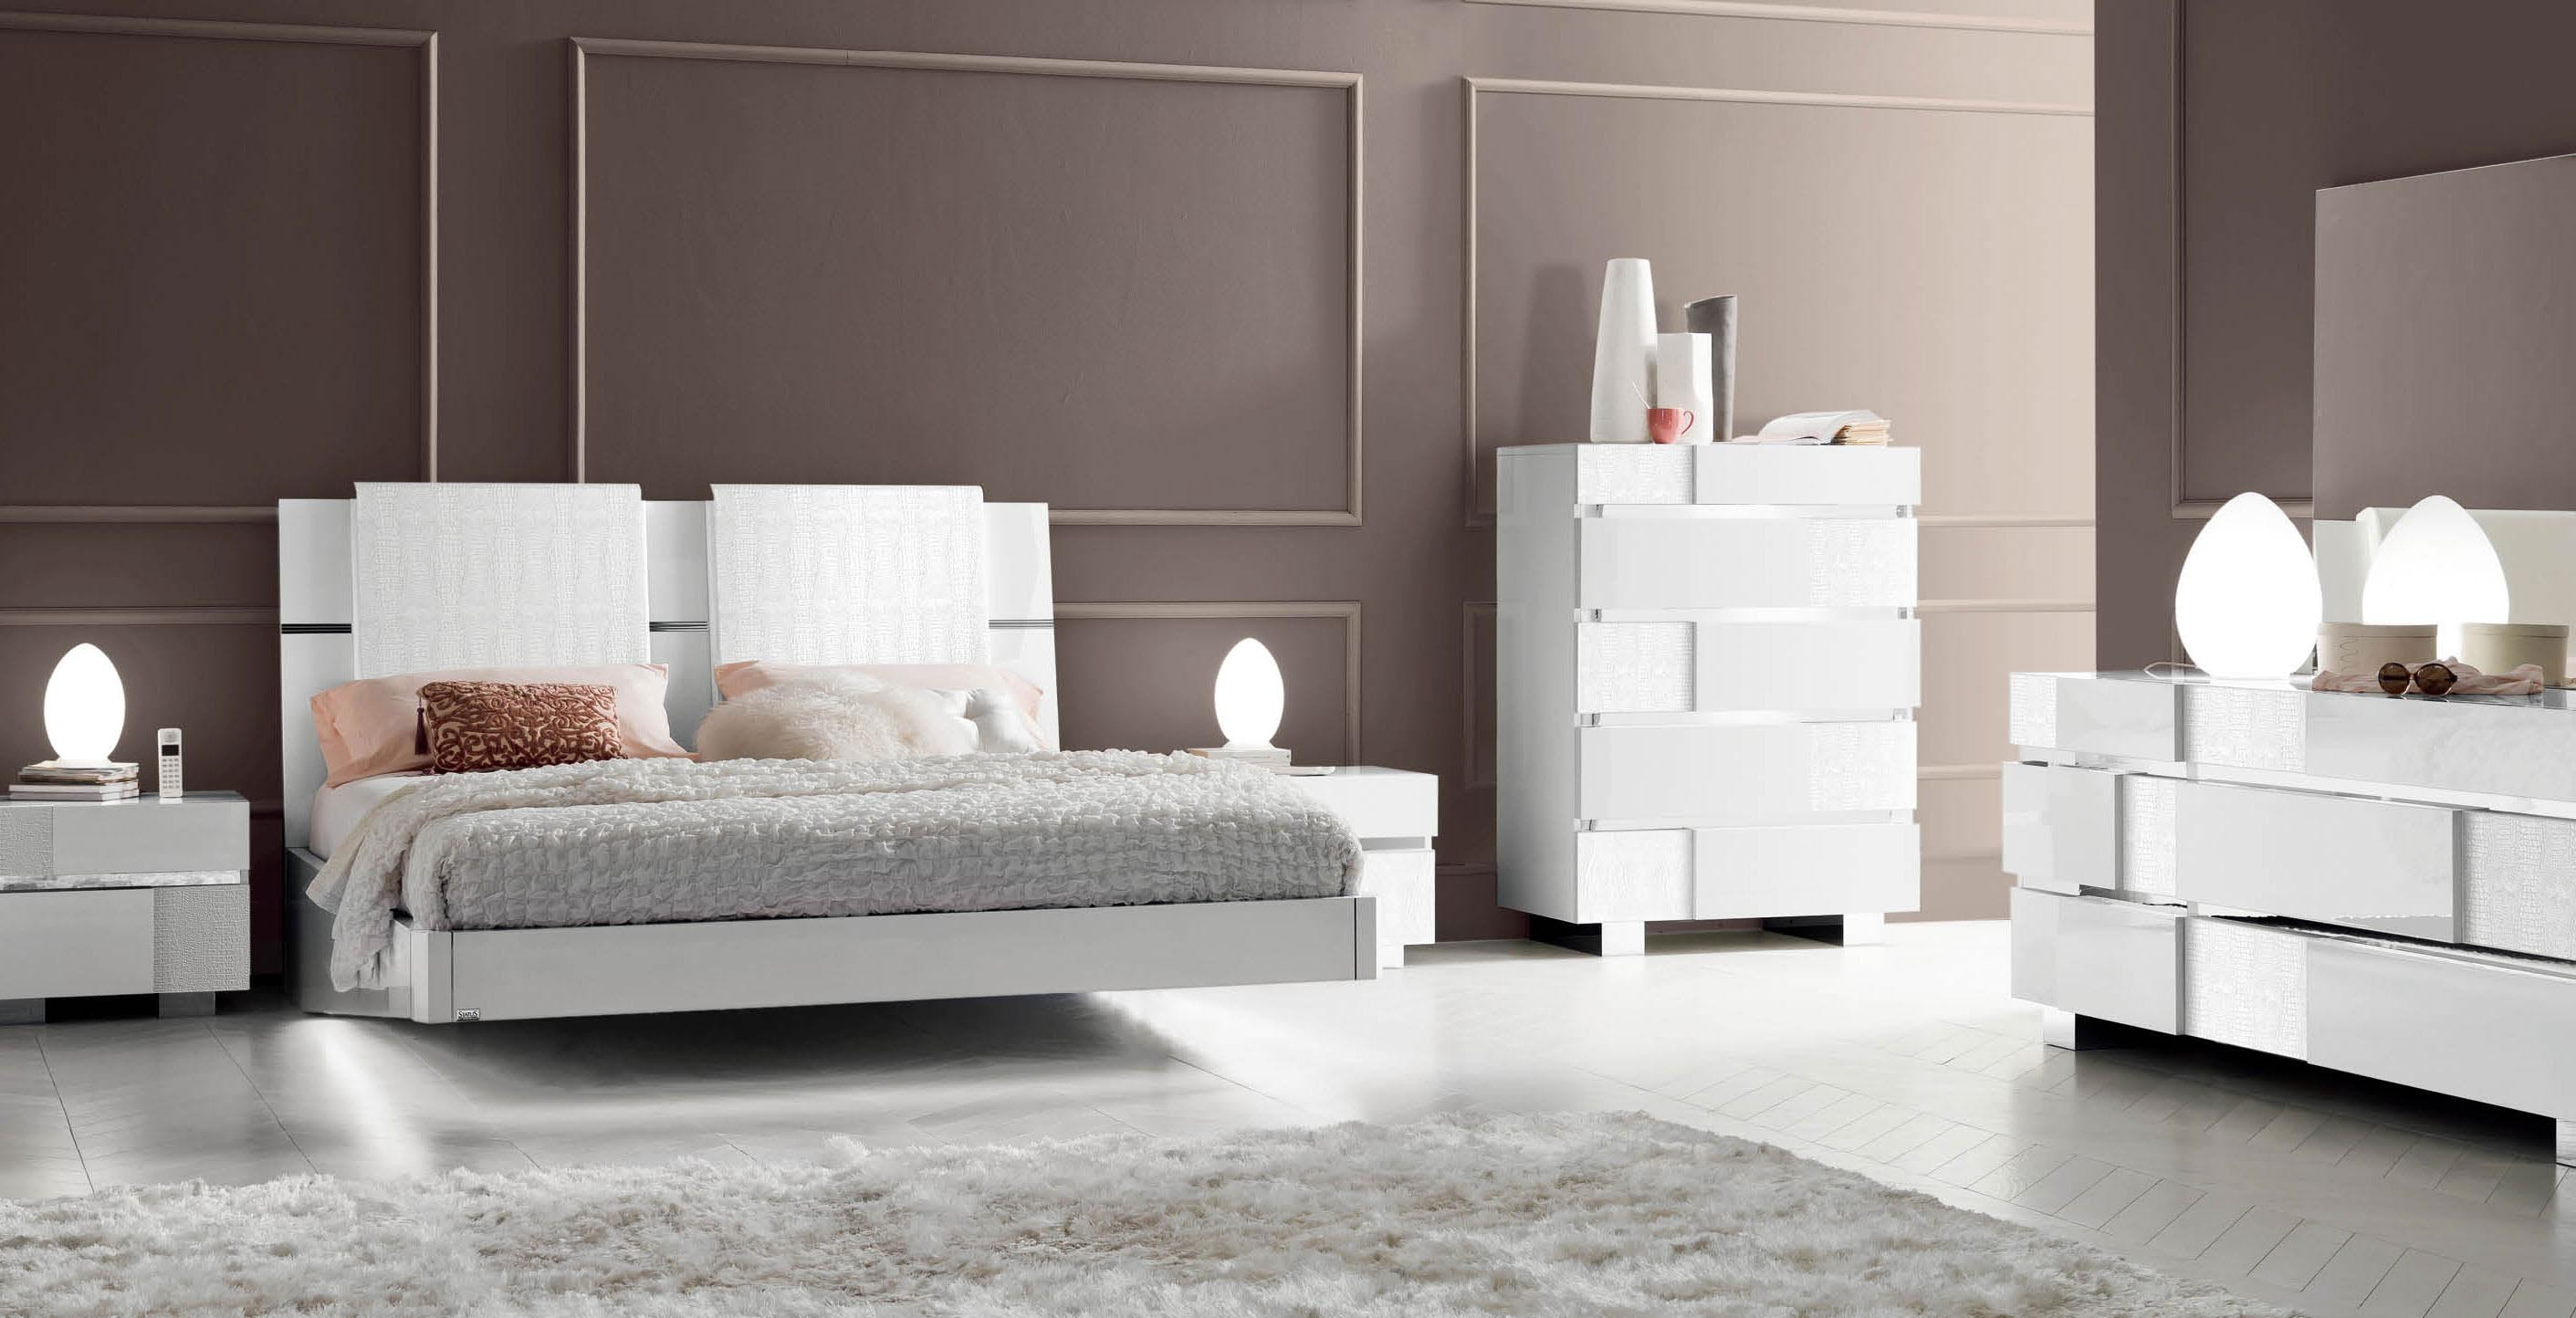 Caprice White Modern Italian Bedroom Set -N Star Modern